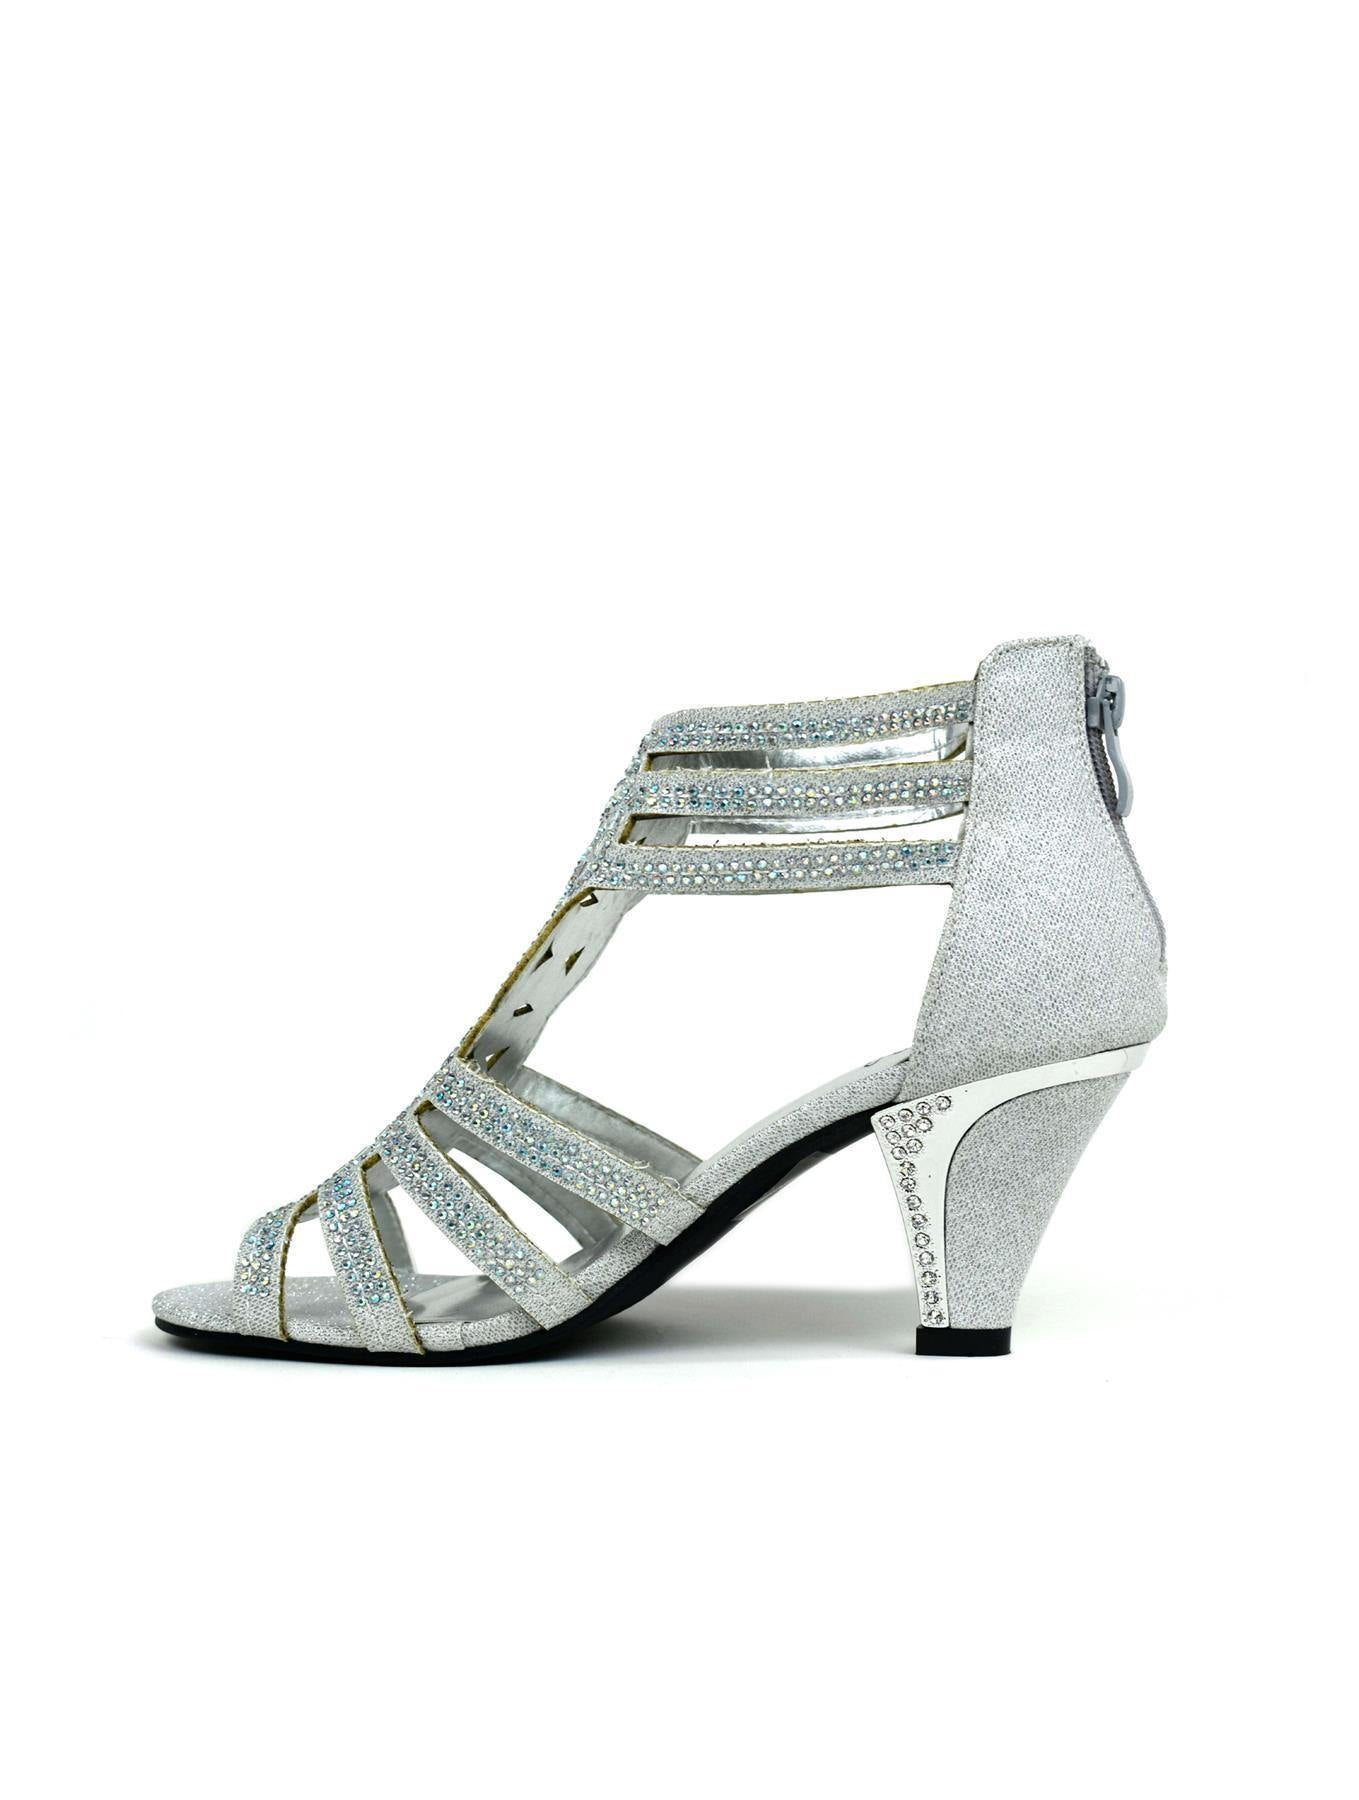 Up To My Ankles Sandal Silver - DadiTude